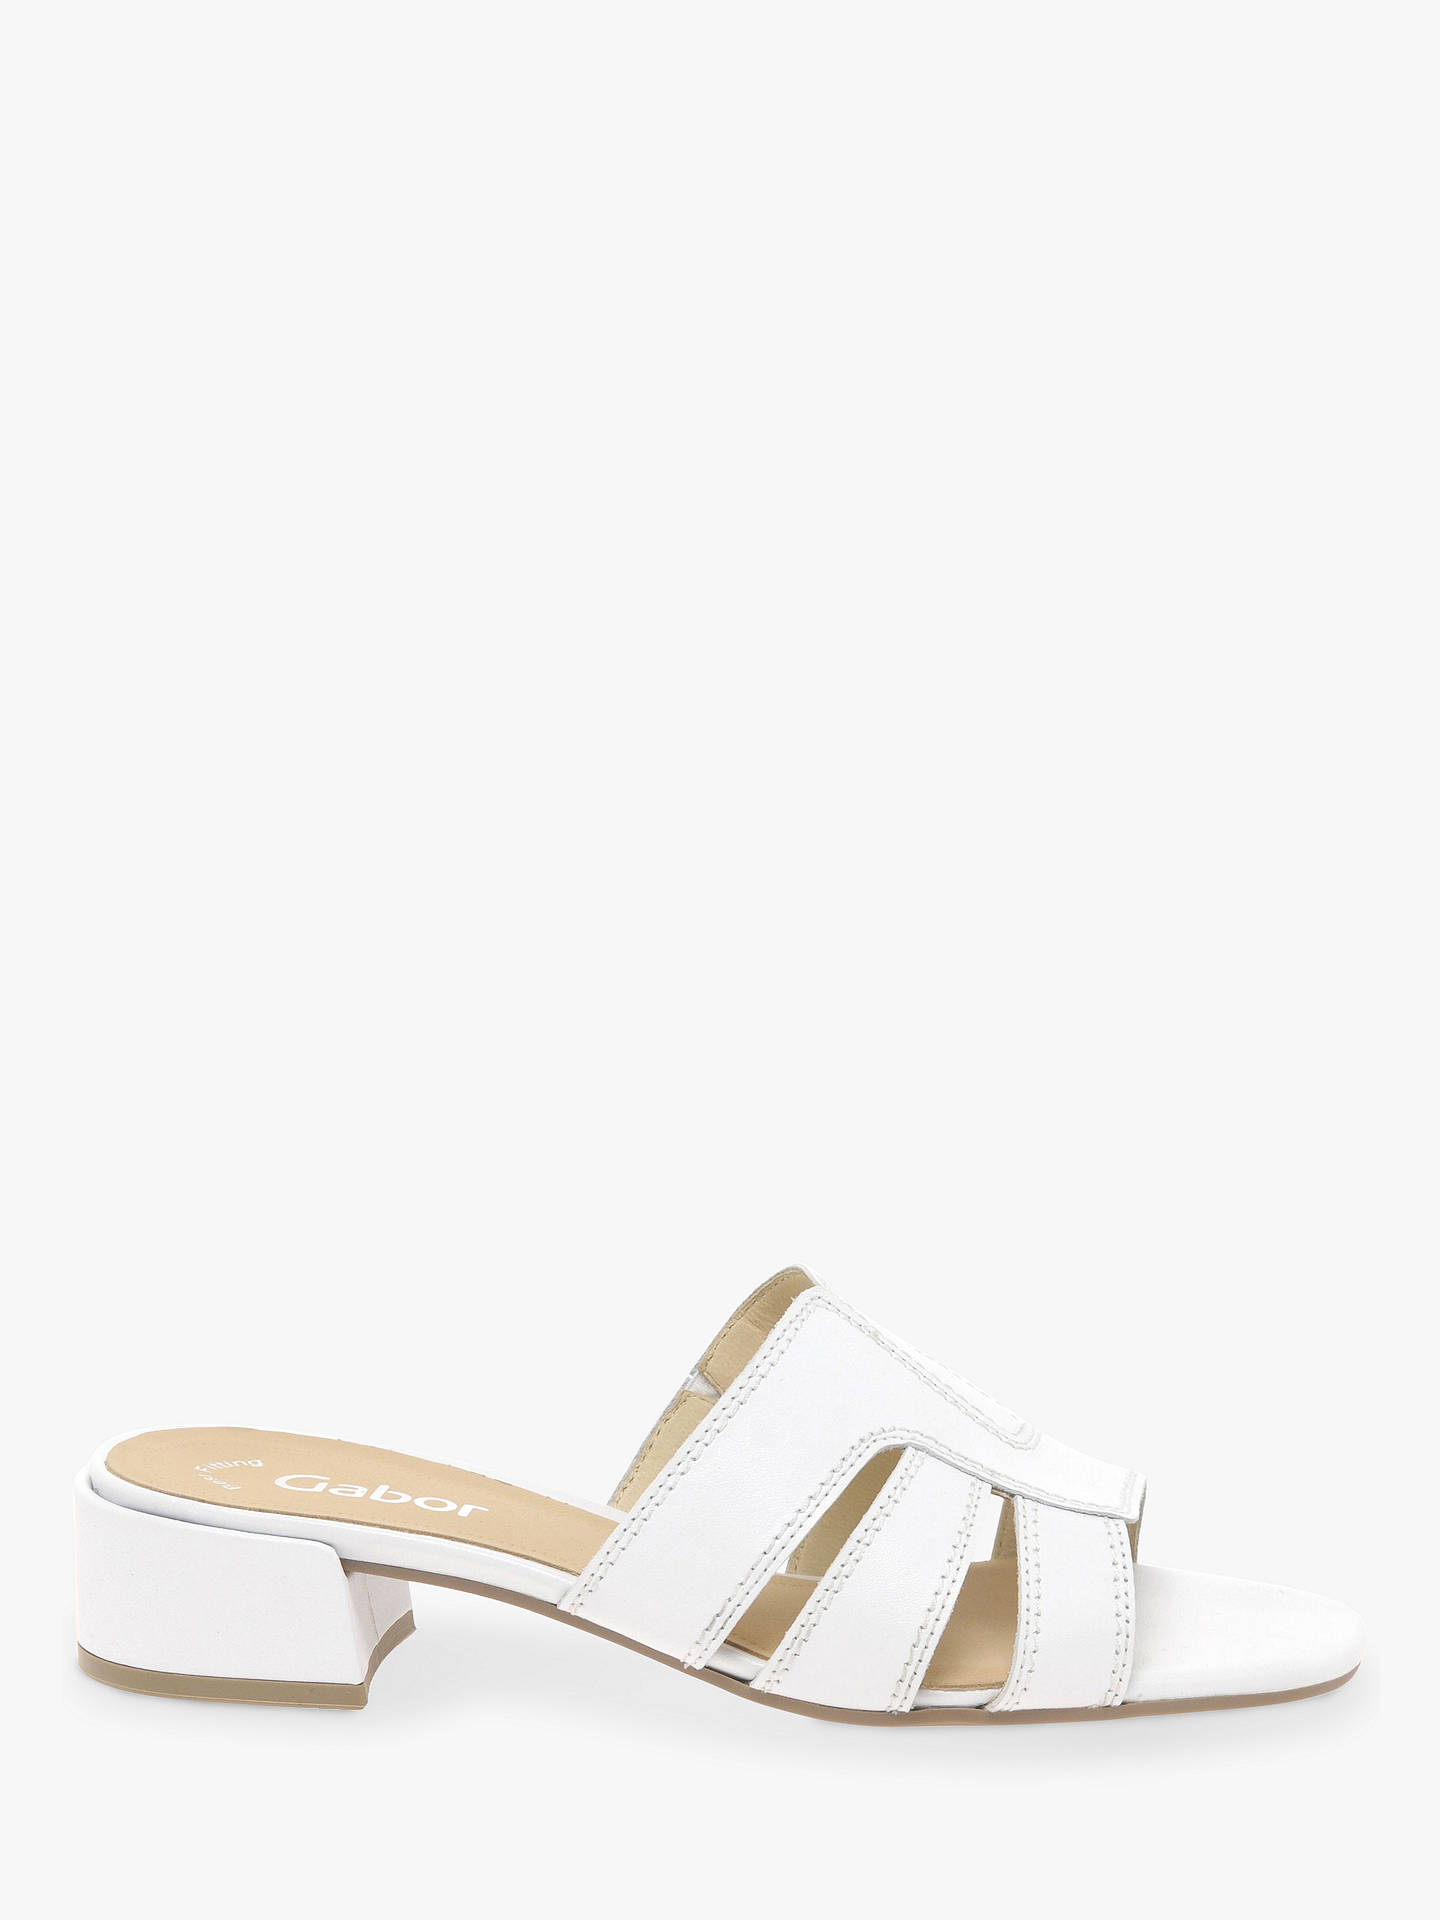 89868f8b2a2 Gabor Amos Block Heel Slip-On Sandals at John Lewis   Partners